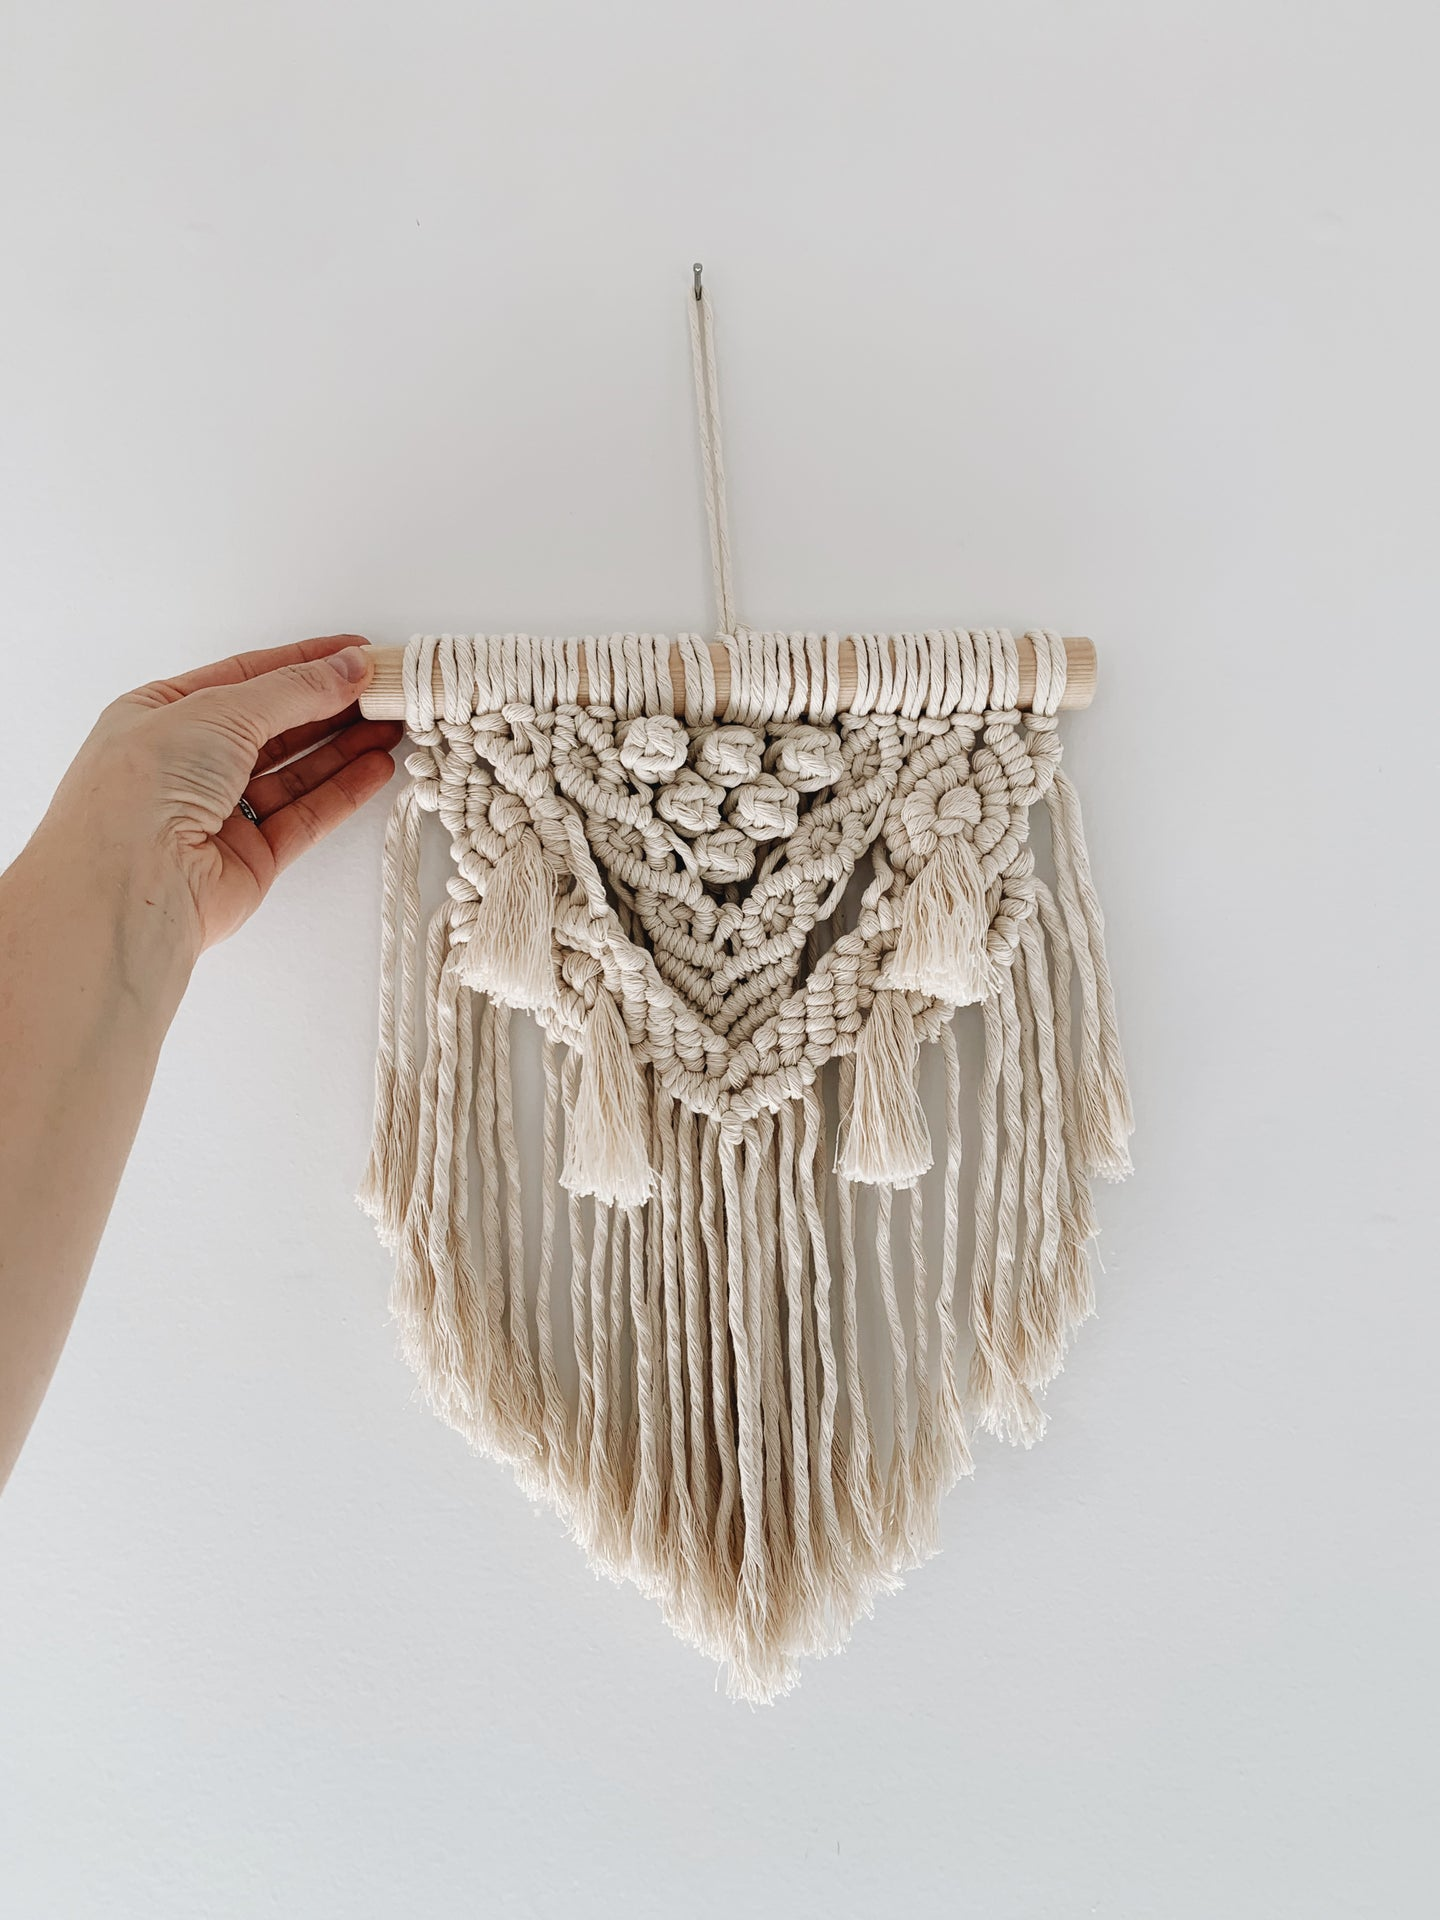 Small Boho Macrame Wall hanging on Natural dowel